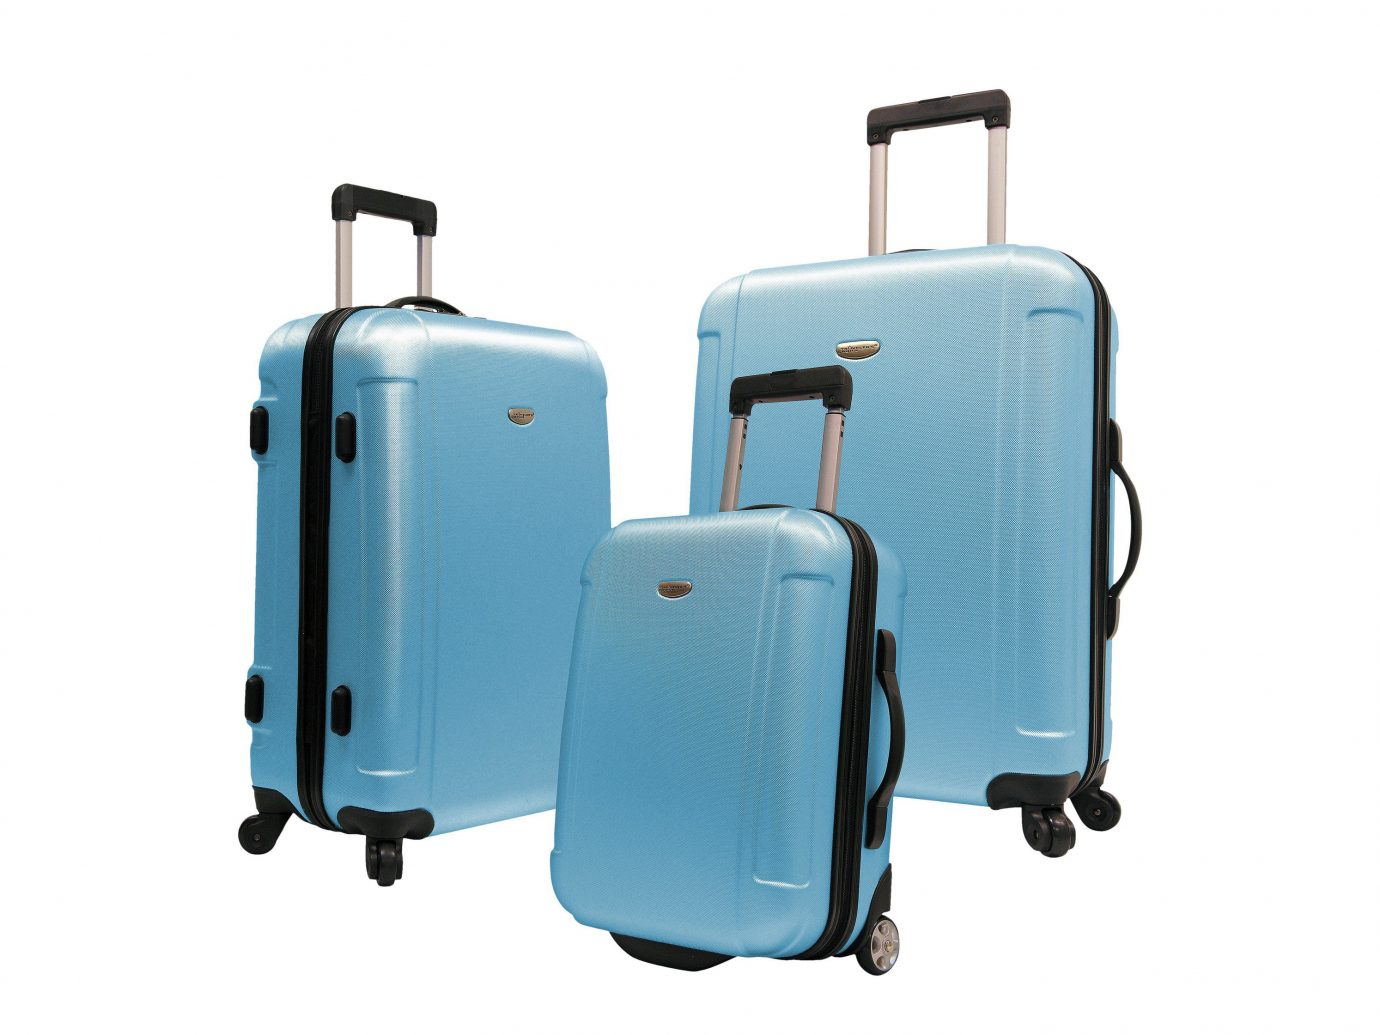 Packing Tips Style + Design Travel Shop appliance product suitcase electric blue product design luggage & bags hand luggage different